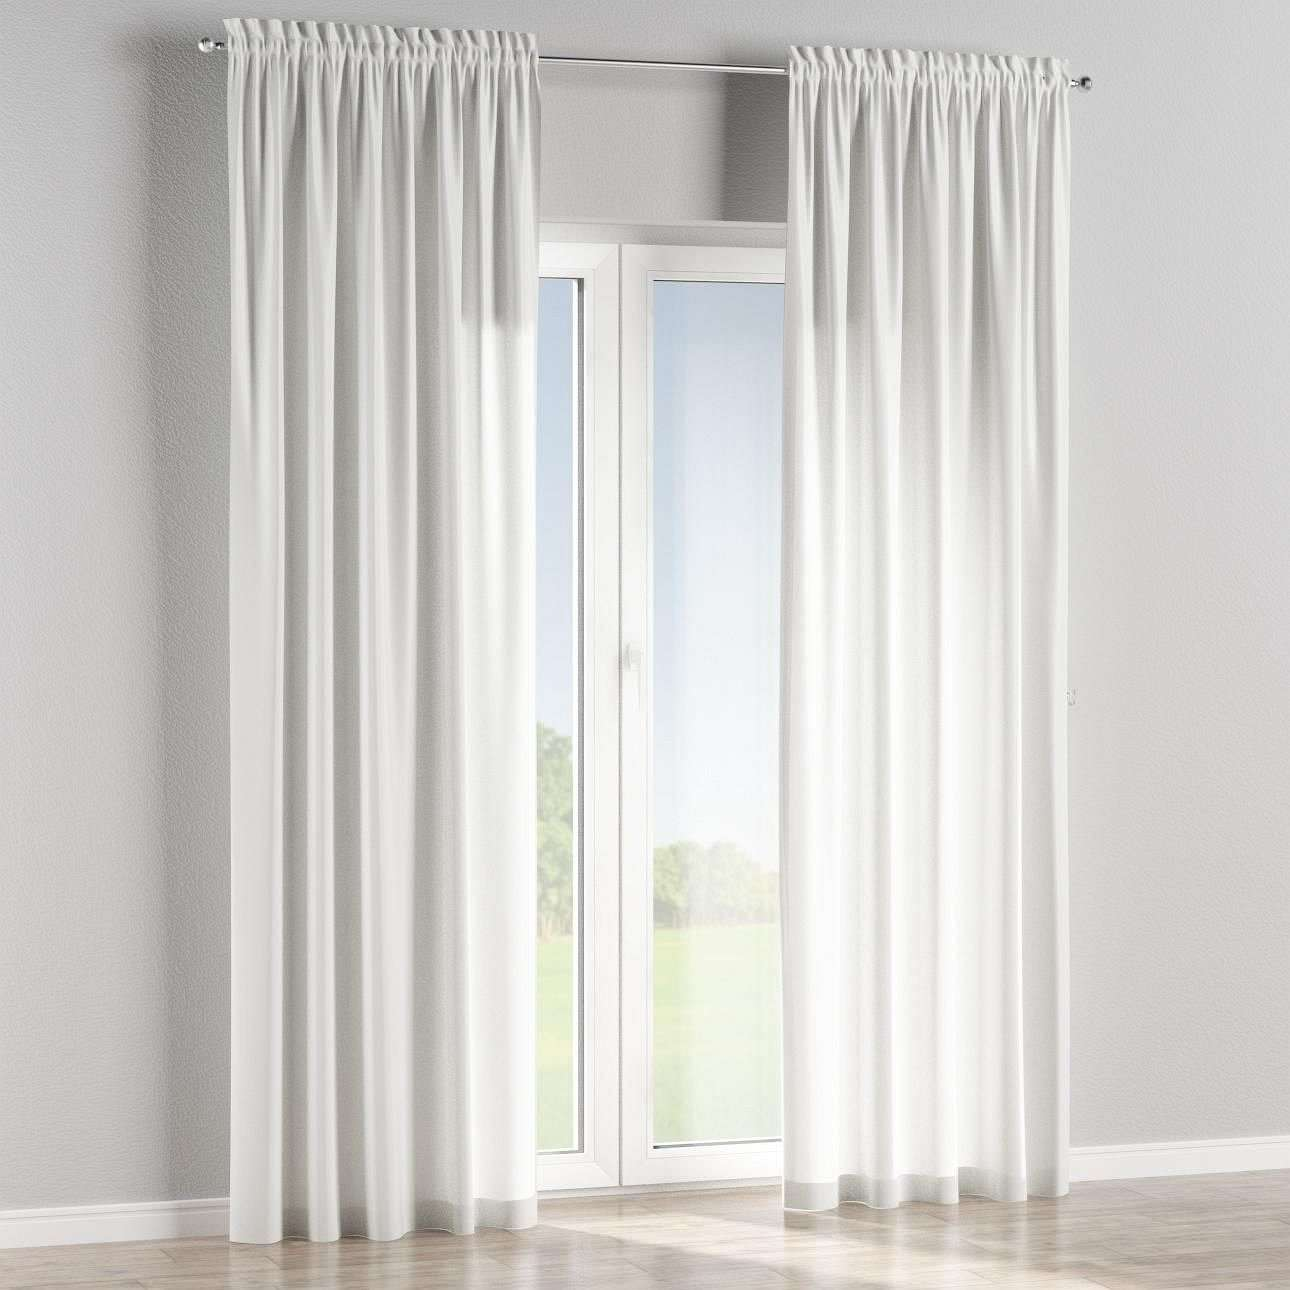 Slot and frill lined curtains in collection Cotton Panama, fabric: 702-05